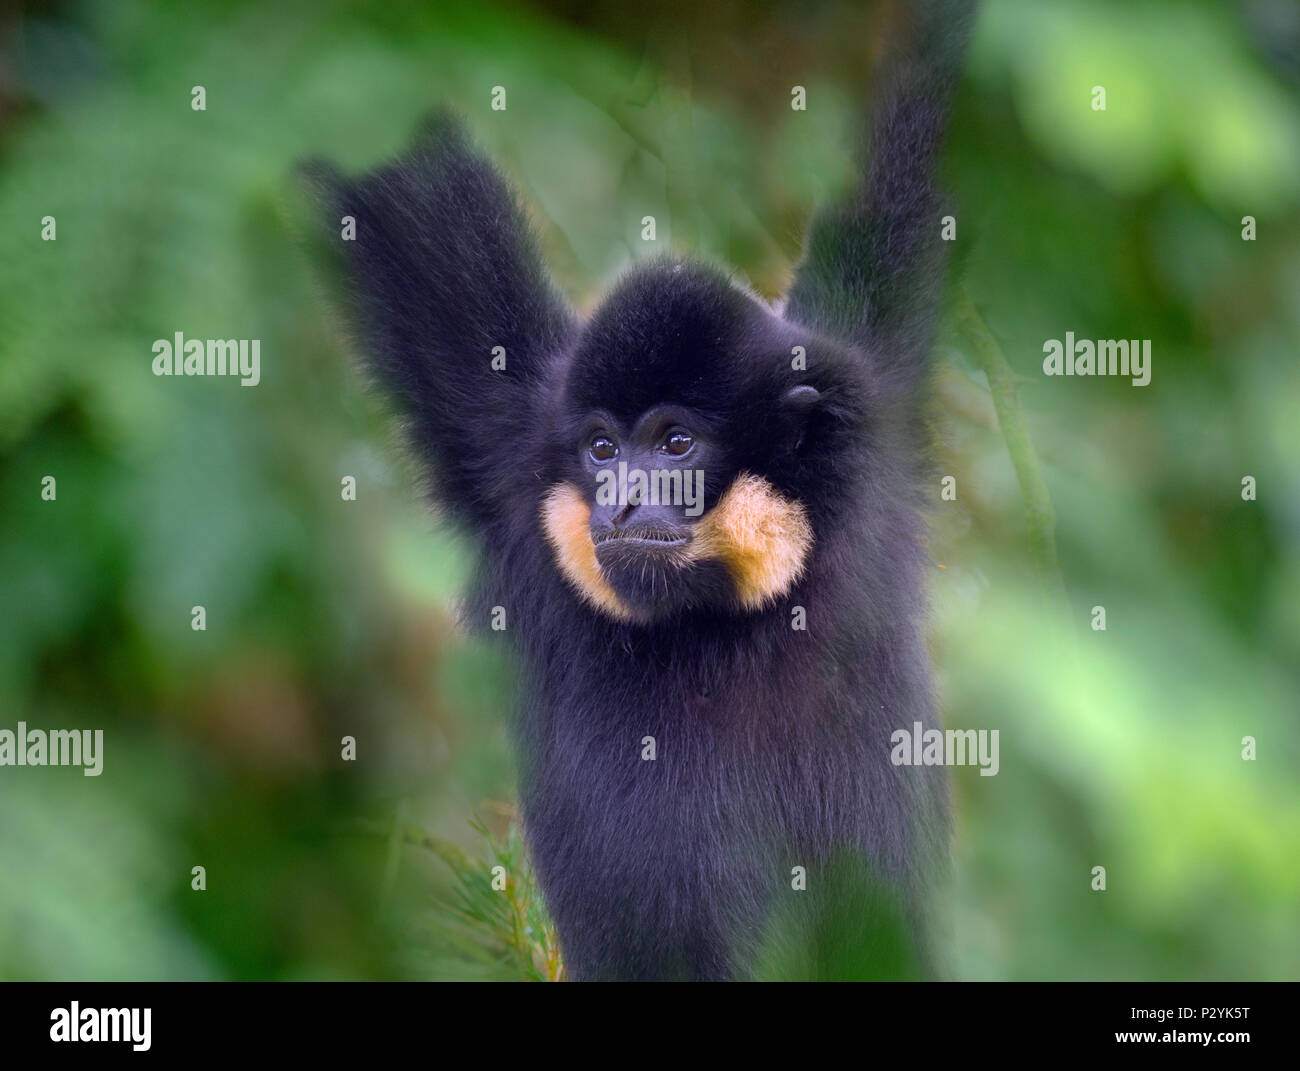 Male Yellow-cheeked gibbon Nomascus gabriellae portrait captive mammal - Stock Image